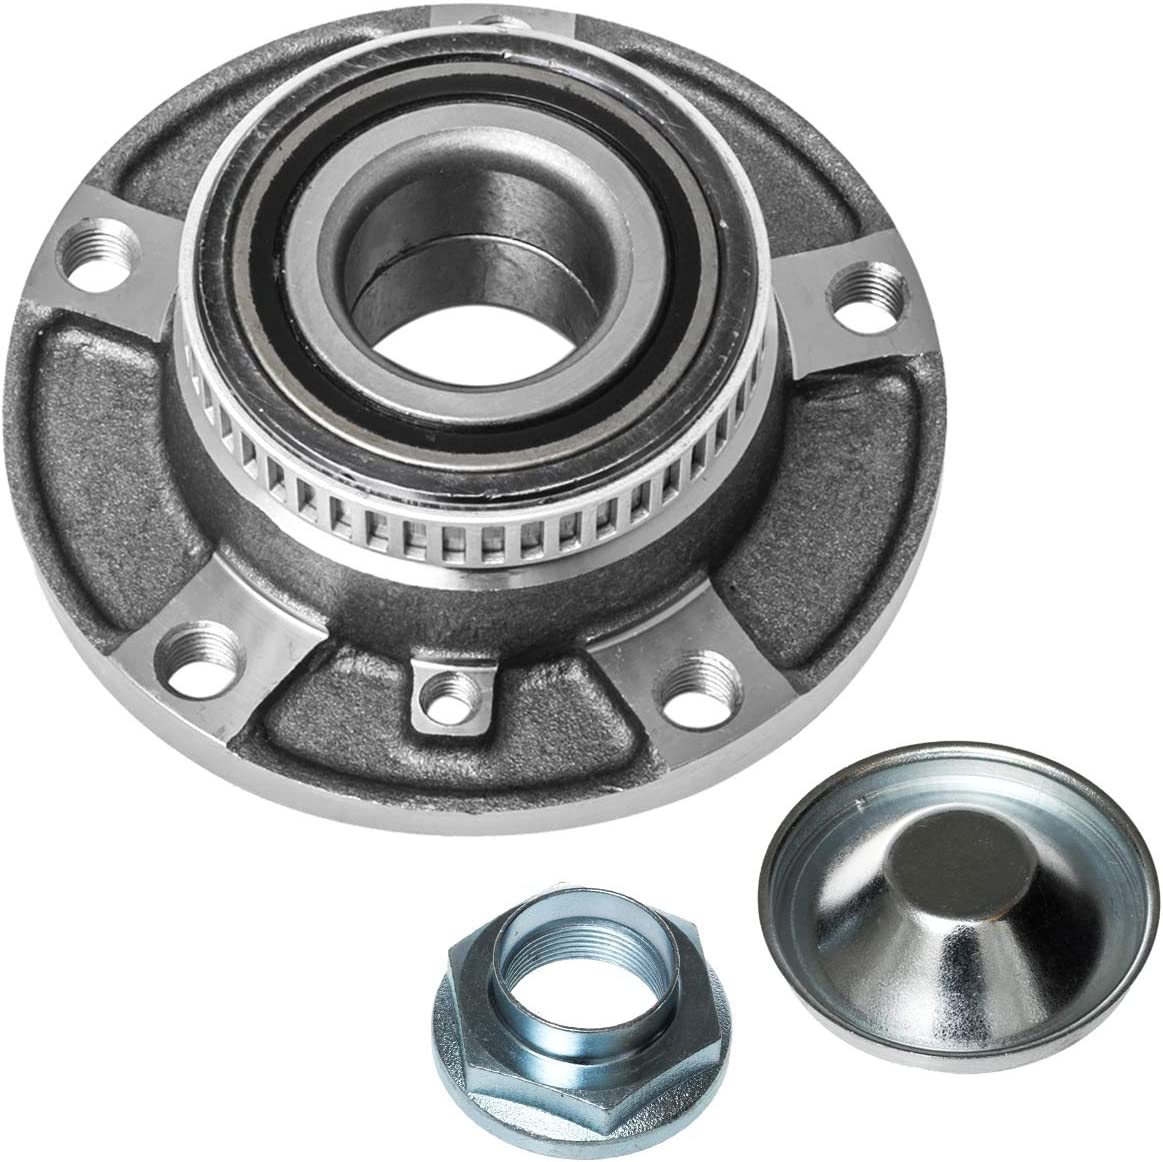 TUCAREST 513125 Front Fresno Mall Wheel Selling and selling Bearing Assembly Hub and Compatible